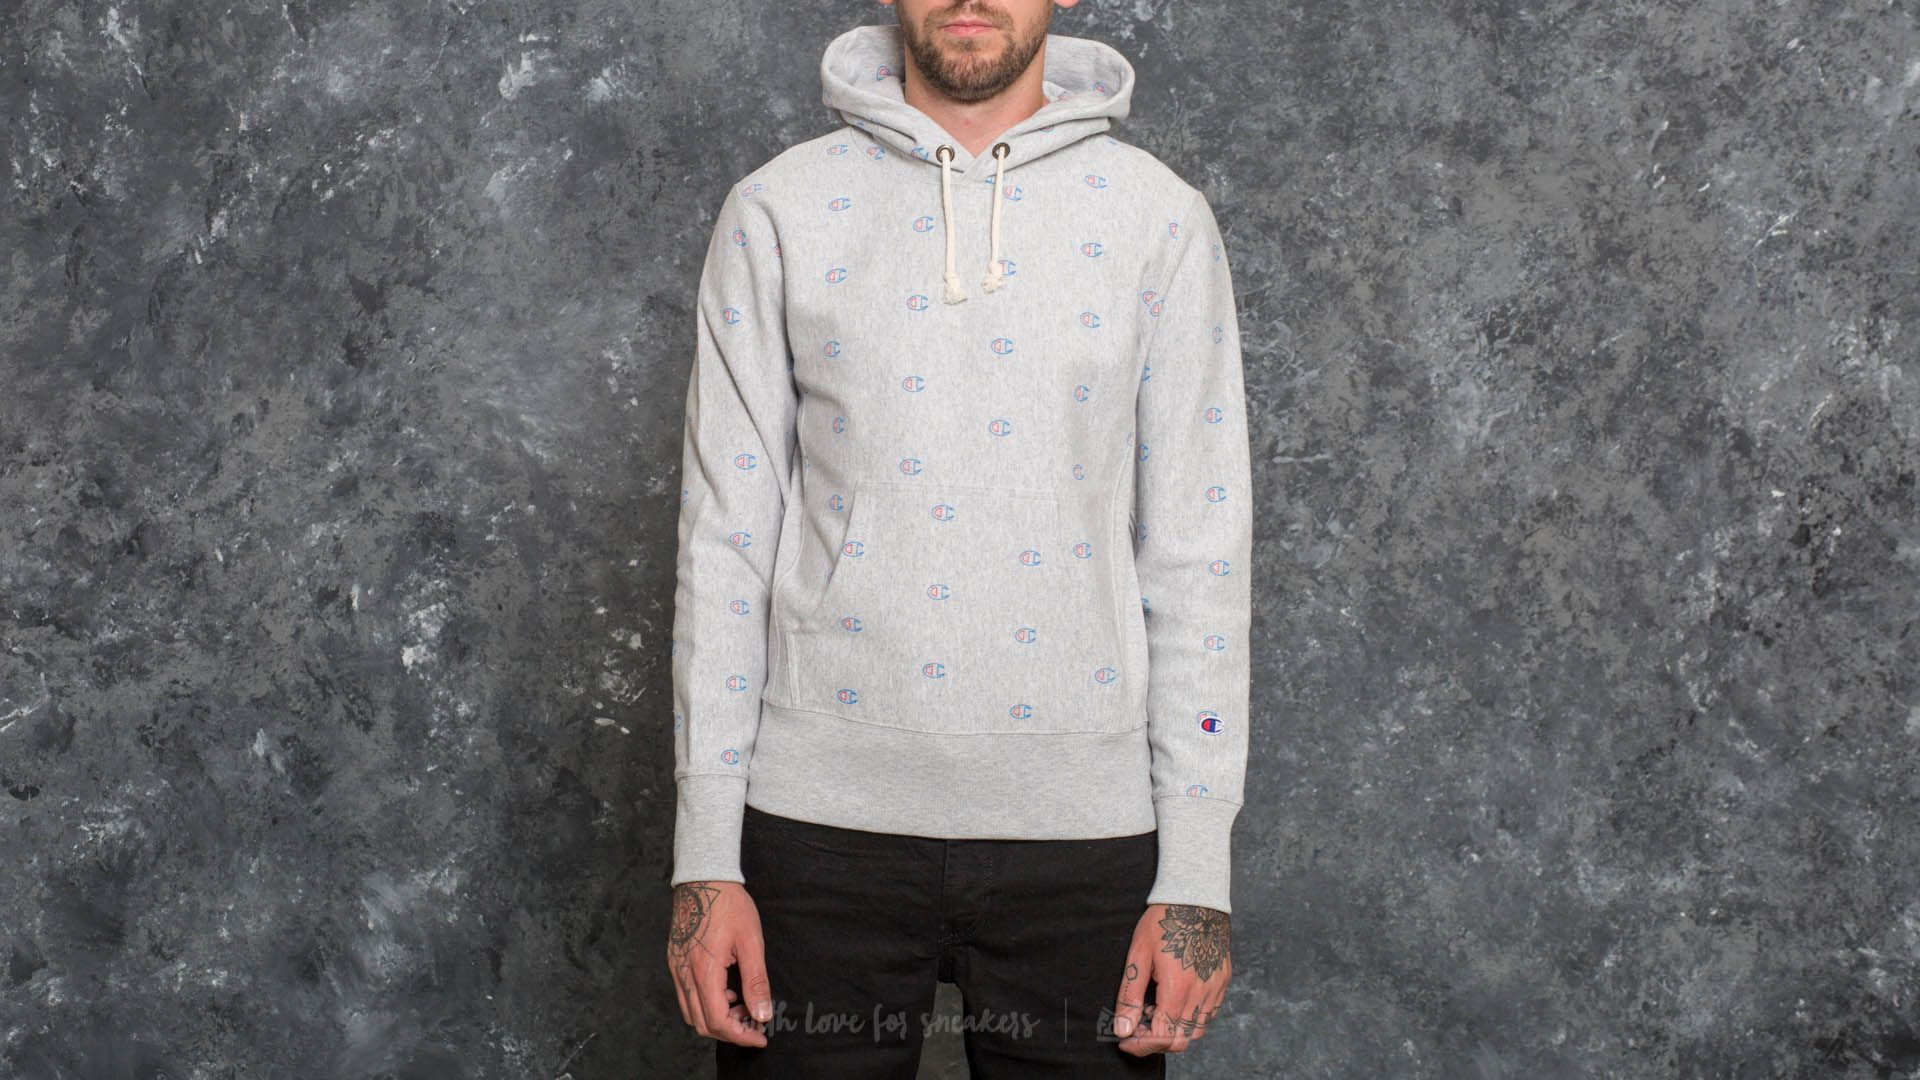 Sweatshirt Oxford Champion Light GreyFootshop Hooded VqzGSUMp